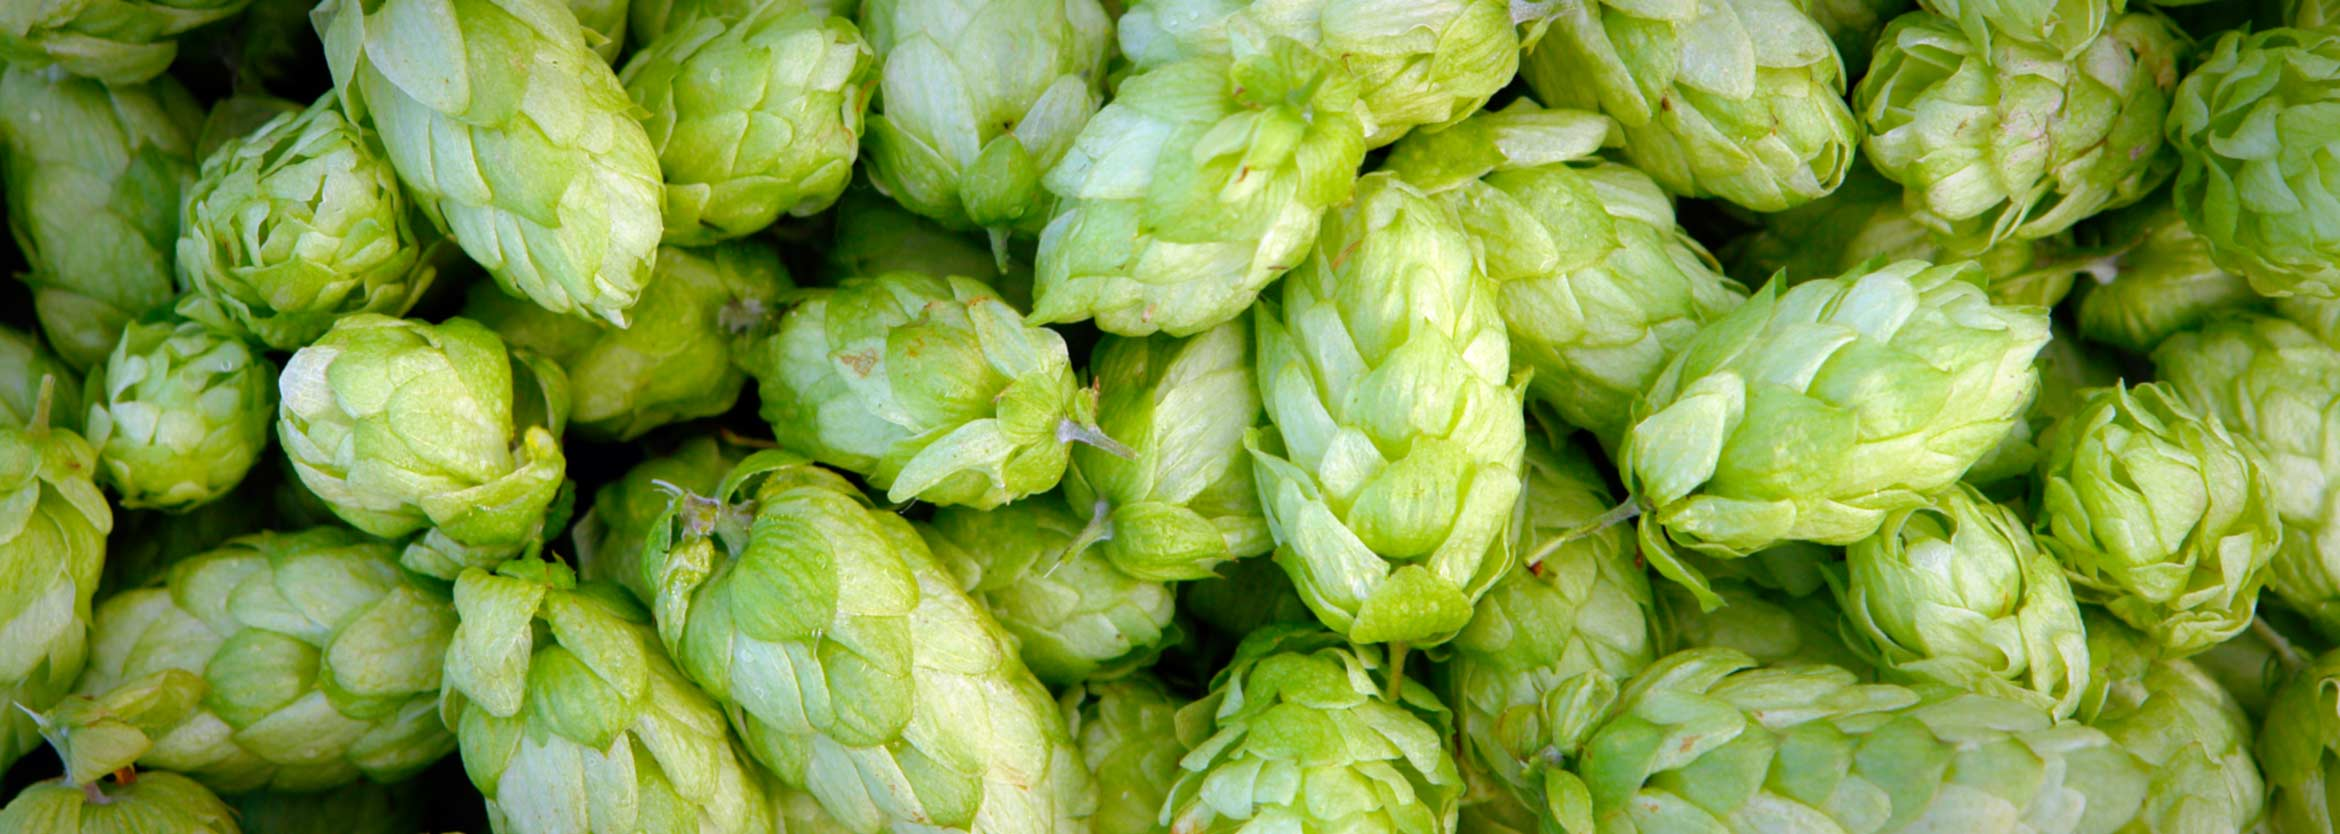 visit_subcategory_images_breweries